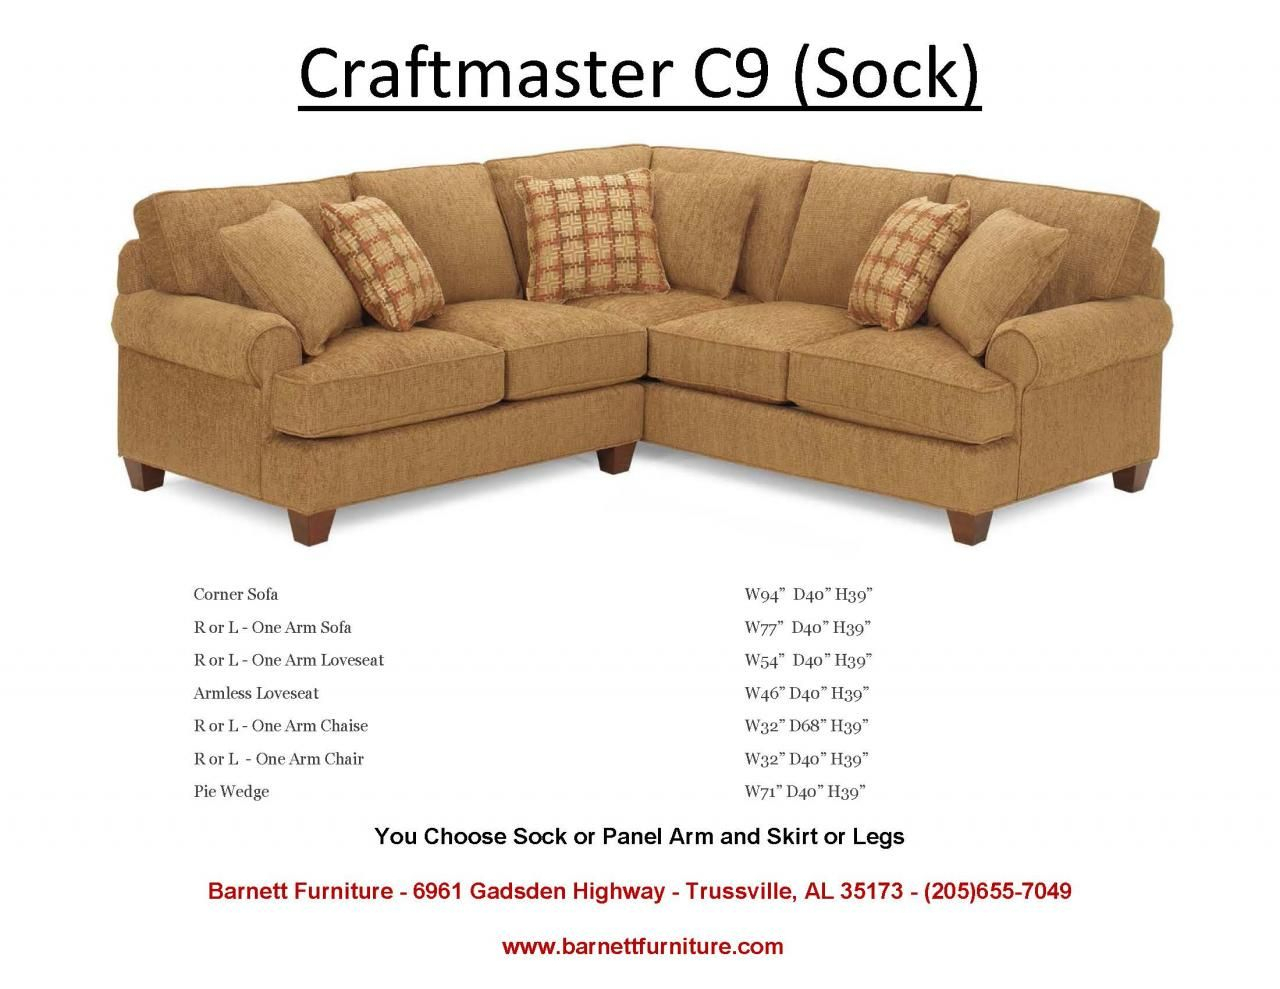 Craftmaster C9 Sectional With Sock Arm And Turned Leg (Image 12 of 25)